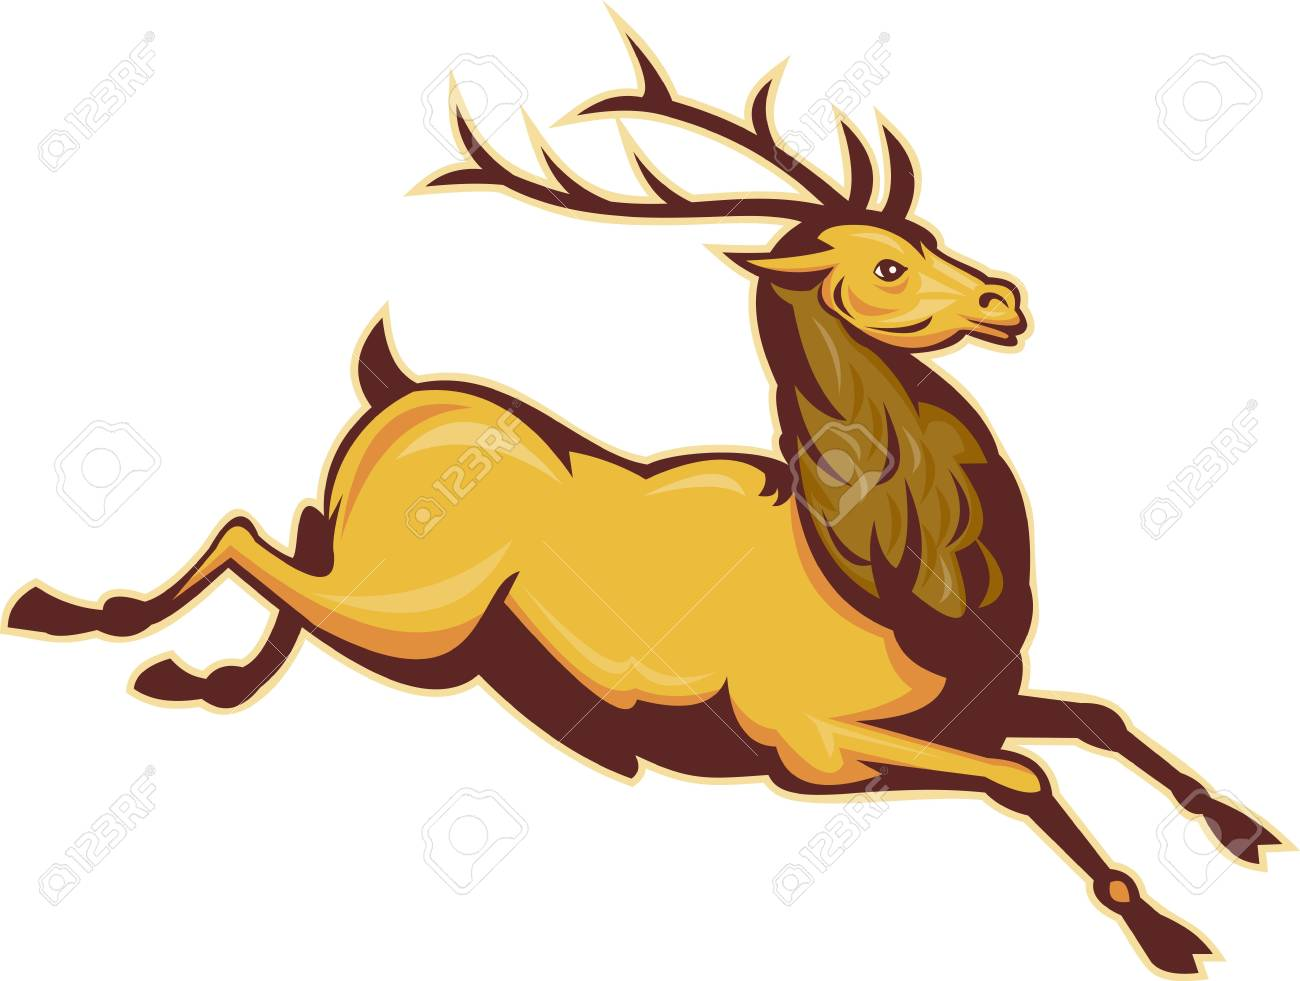 illustration of a Stag deer or buck jumping isolated on whit e background Stock Illustration - 7680408